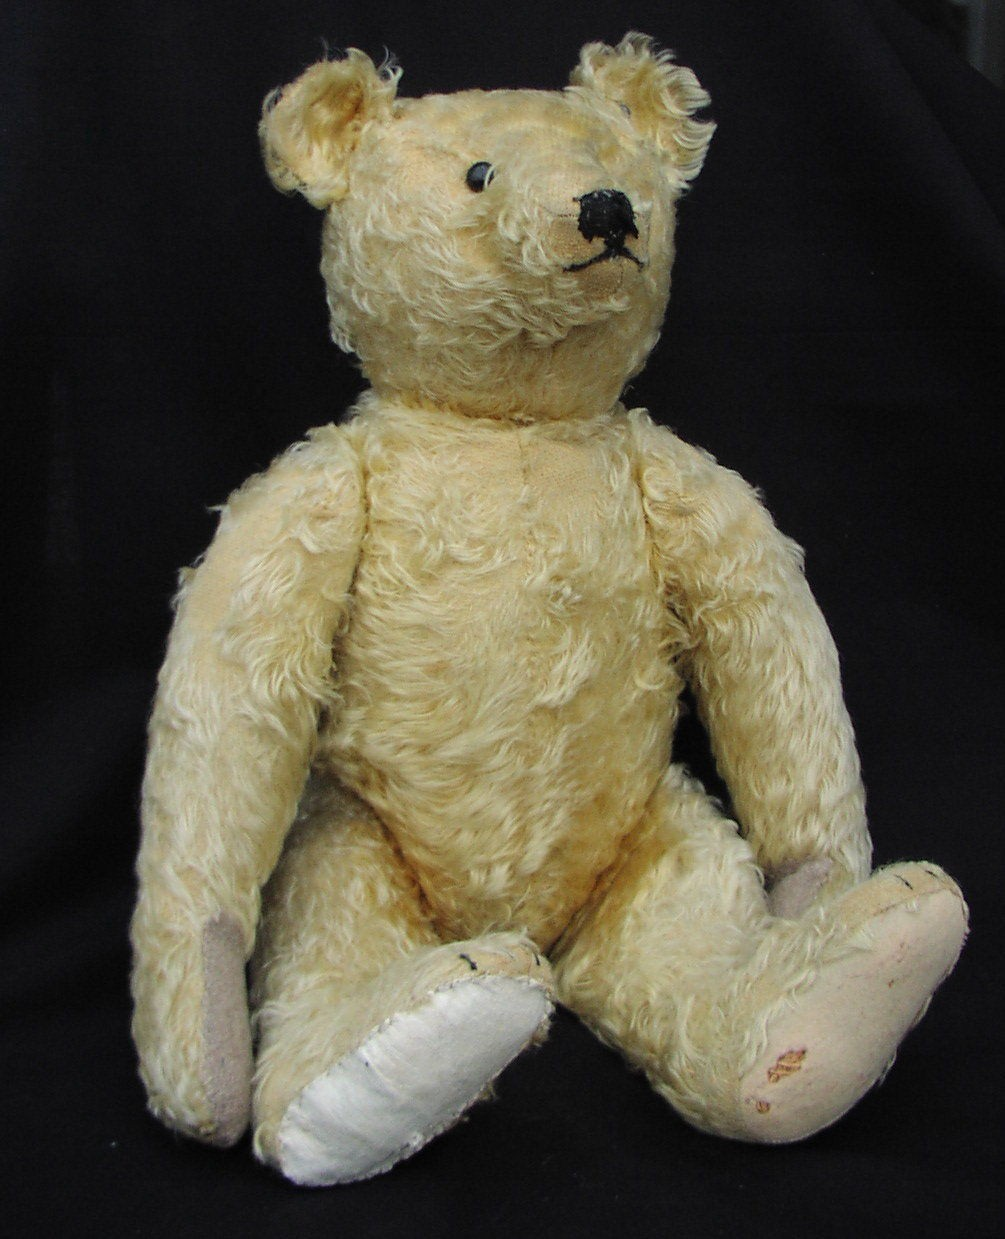 1902 original Steiff Teddy Bear